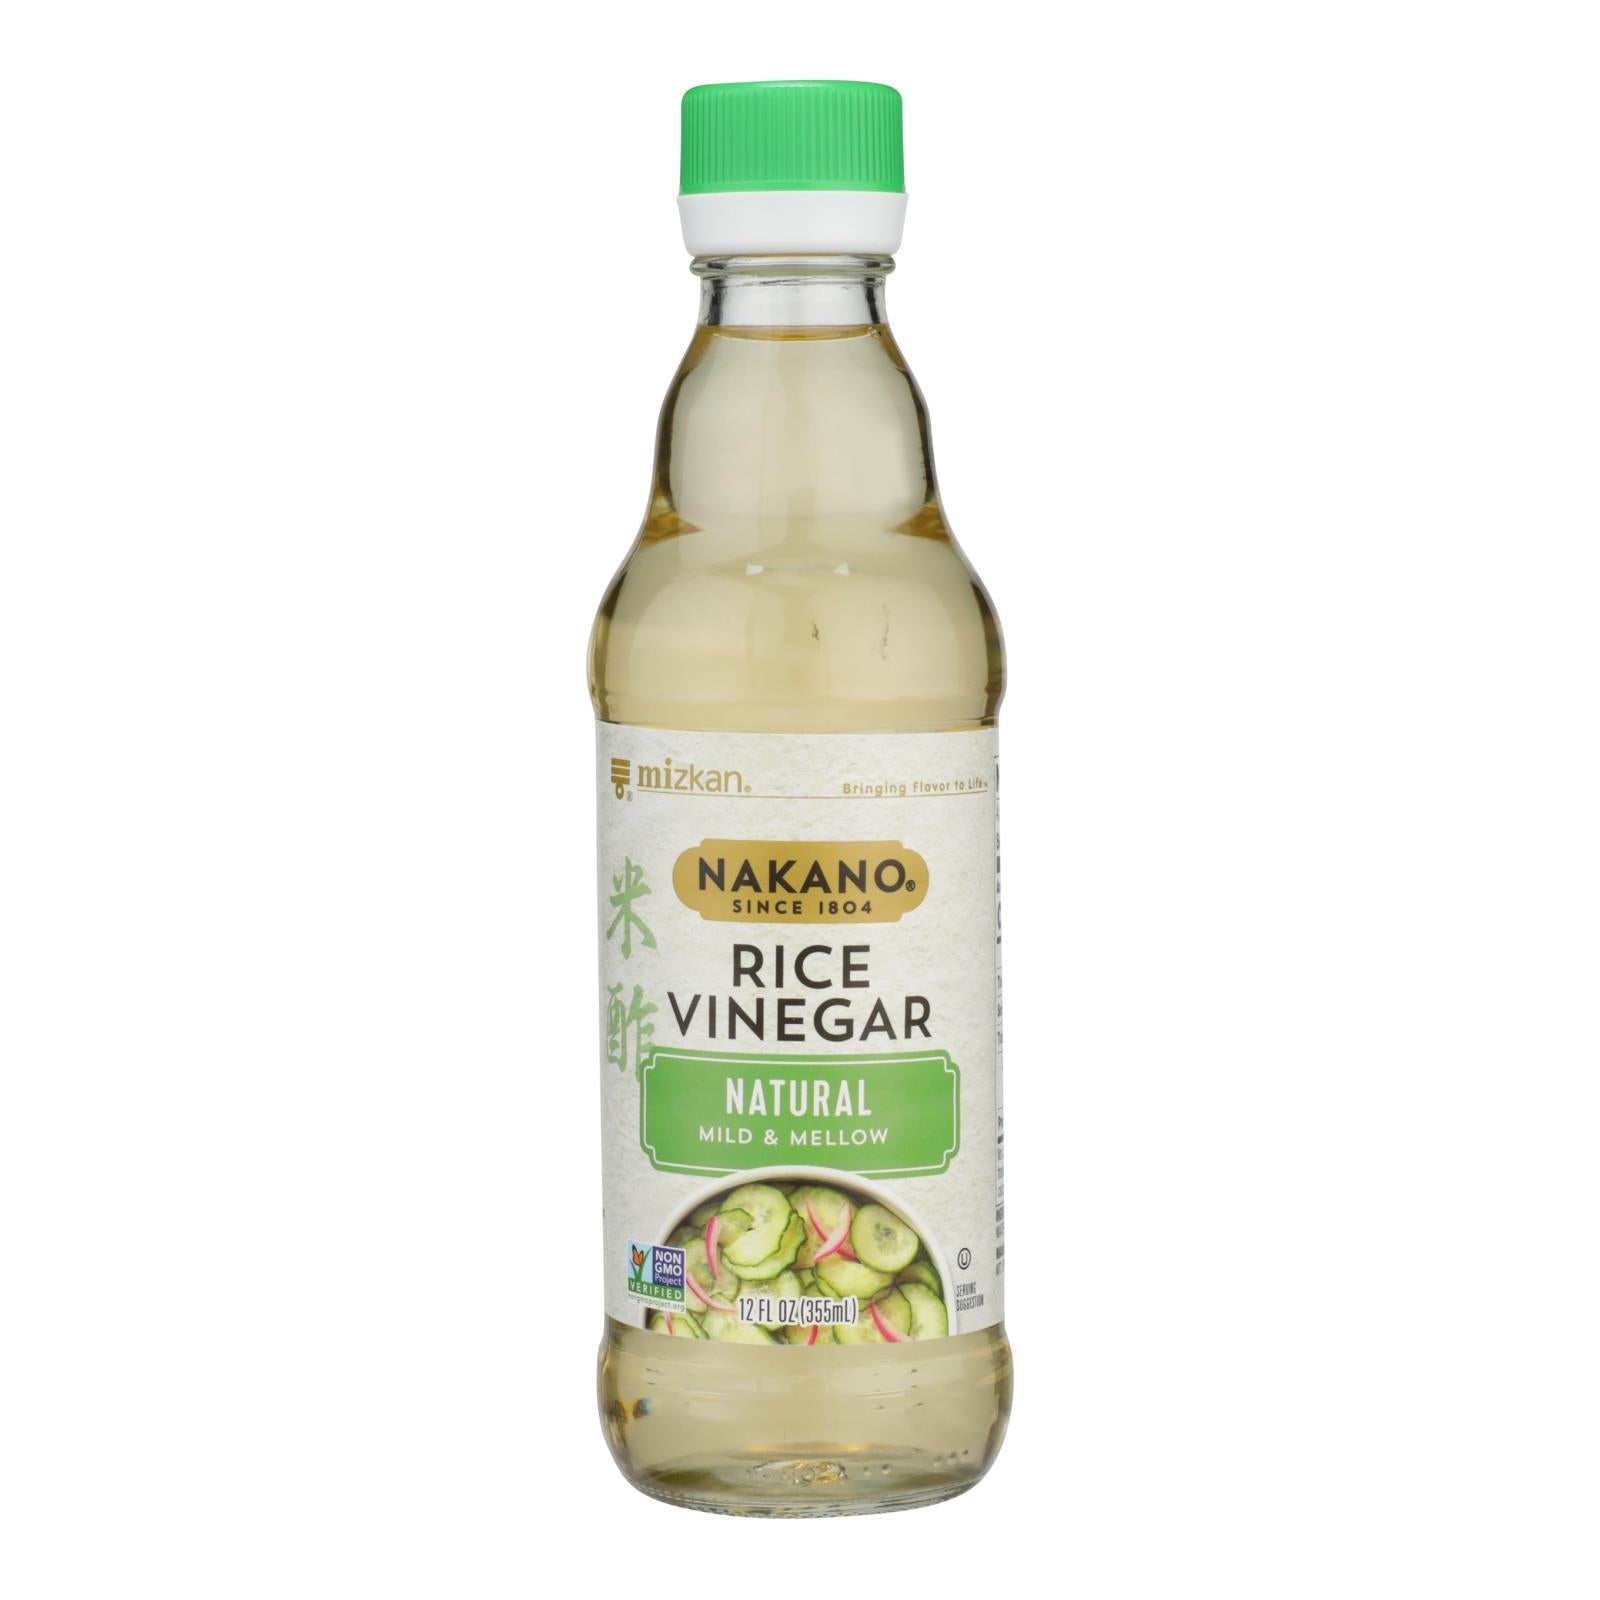 Nakano Rice Vinegar - Vinegar - Case Of 6 - 12 Fl Oz.